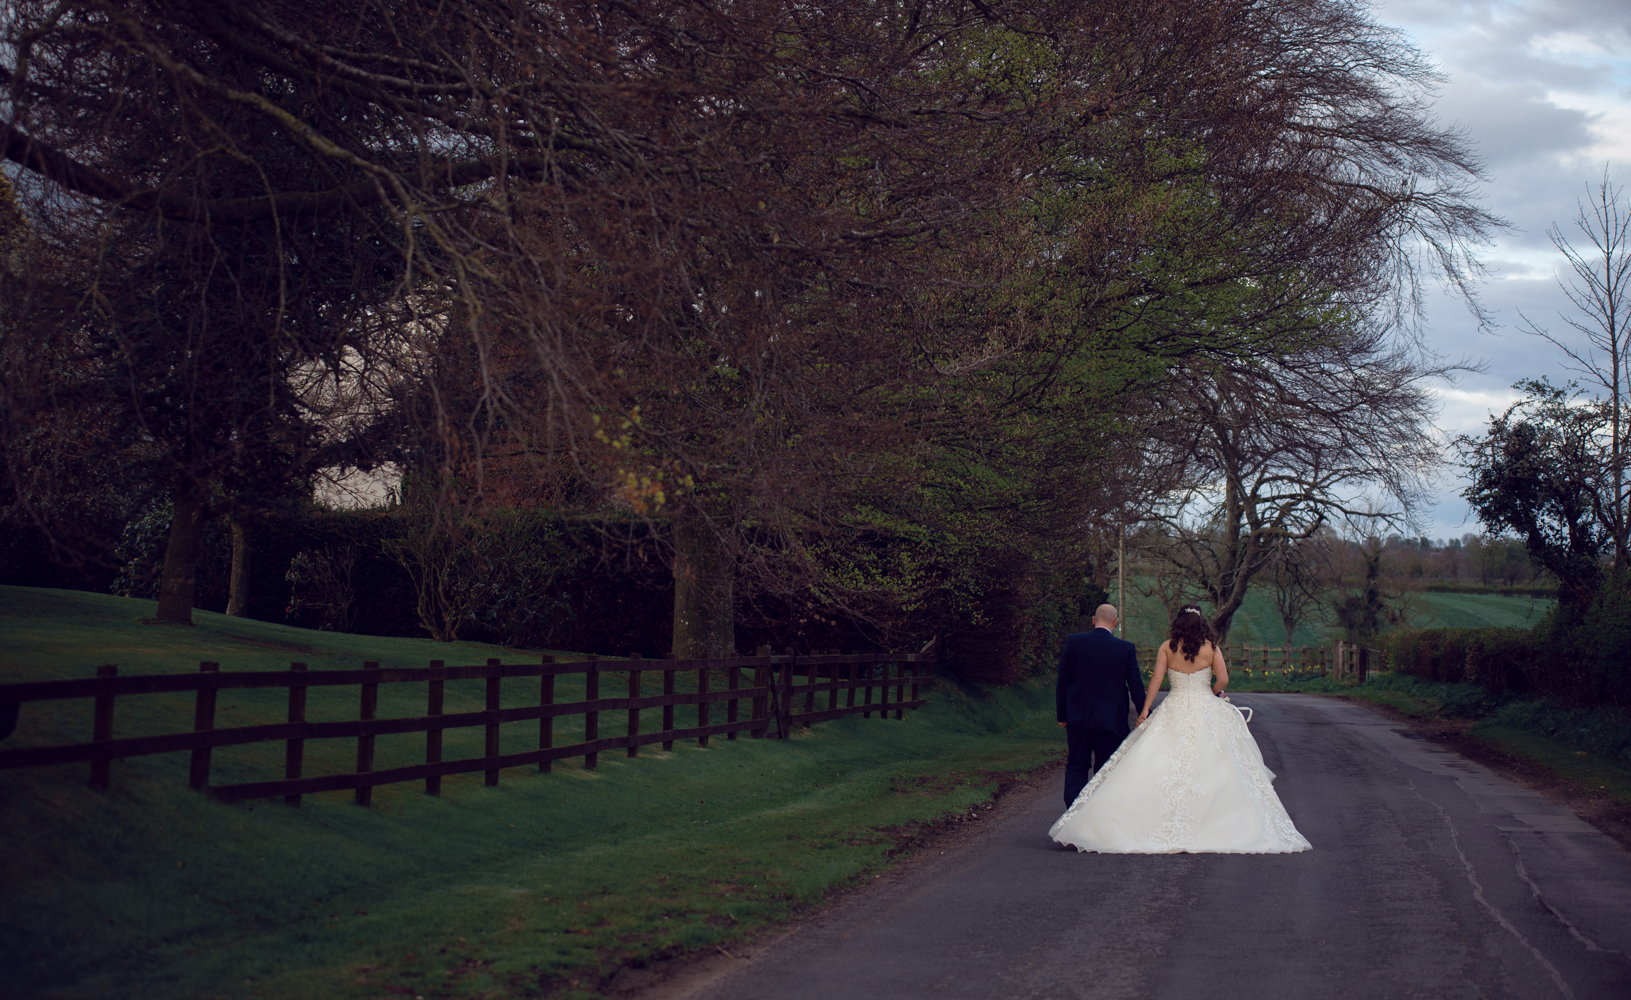 The bride and groom walking down the road during couples portrait session